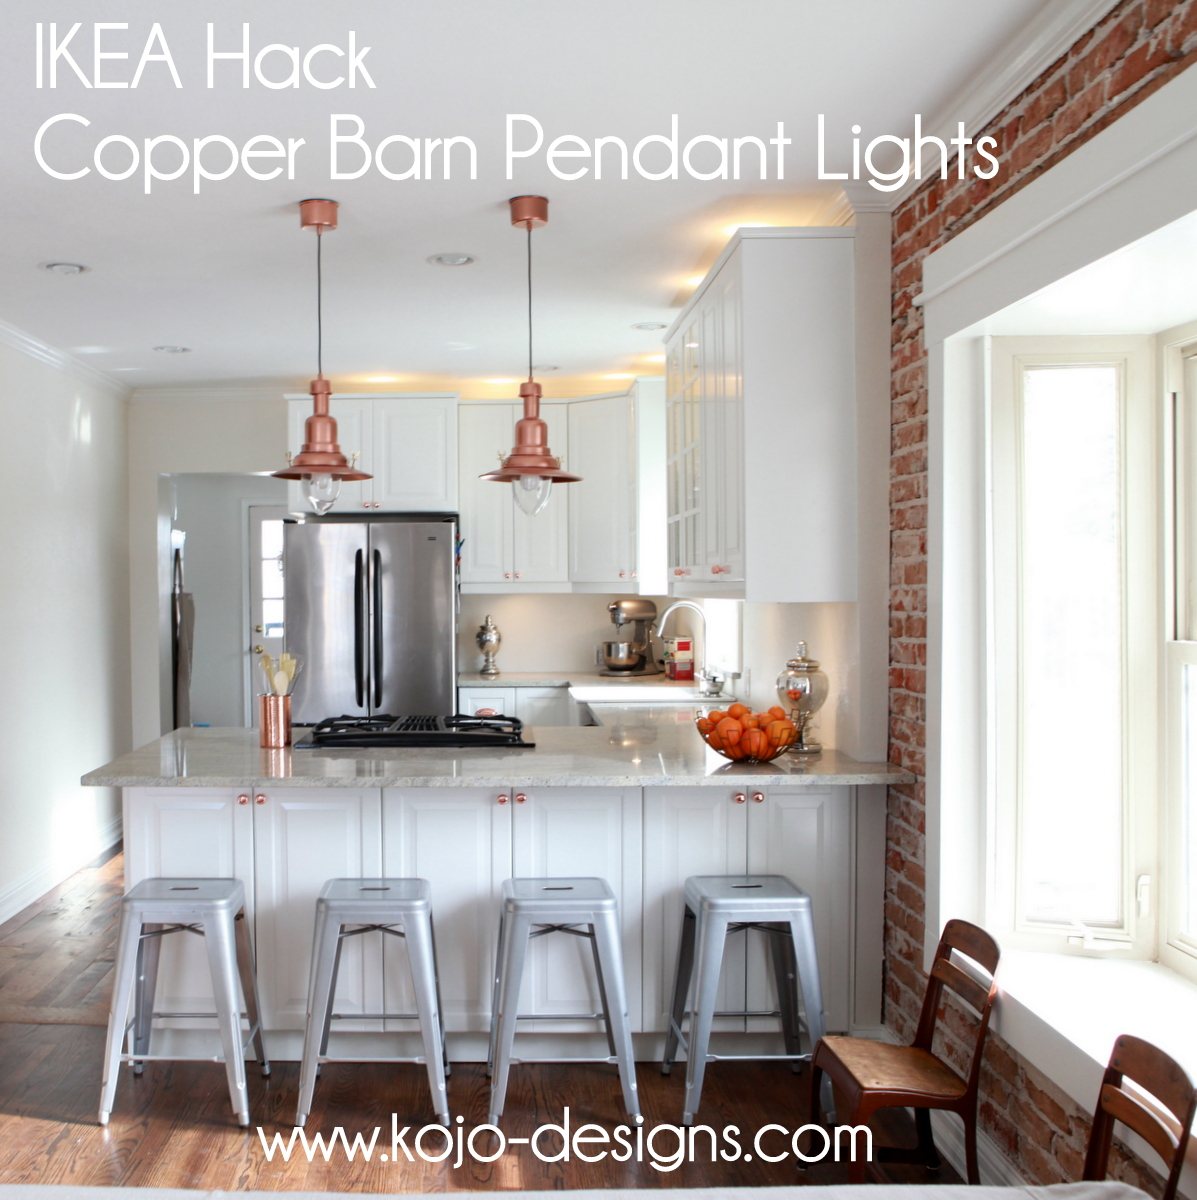 kitchen lighting fixtures 2013 pendants. ikea hack how to turn an ottava light into a copper barn pendant kitchen lighting fixtures 2013 pendants